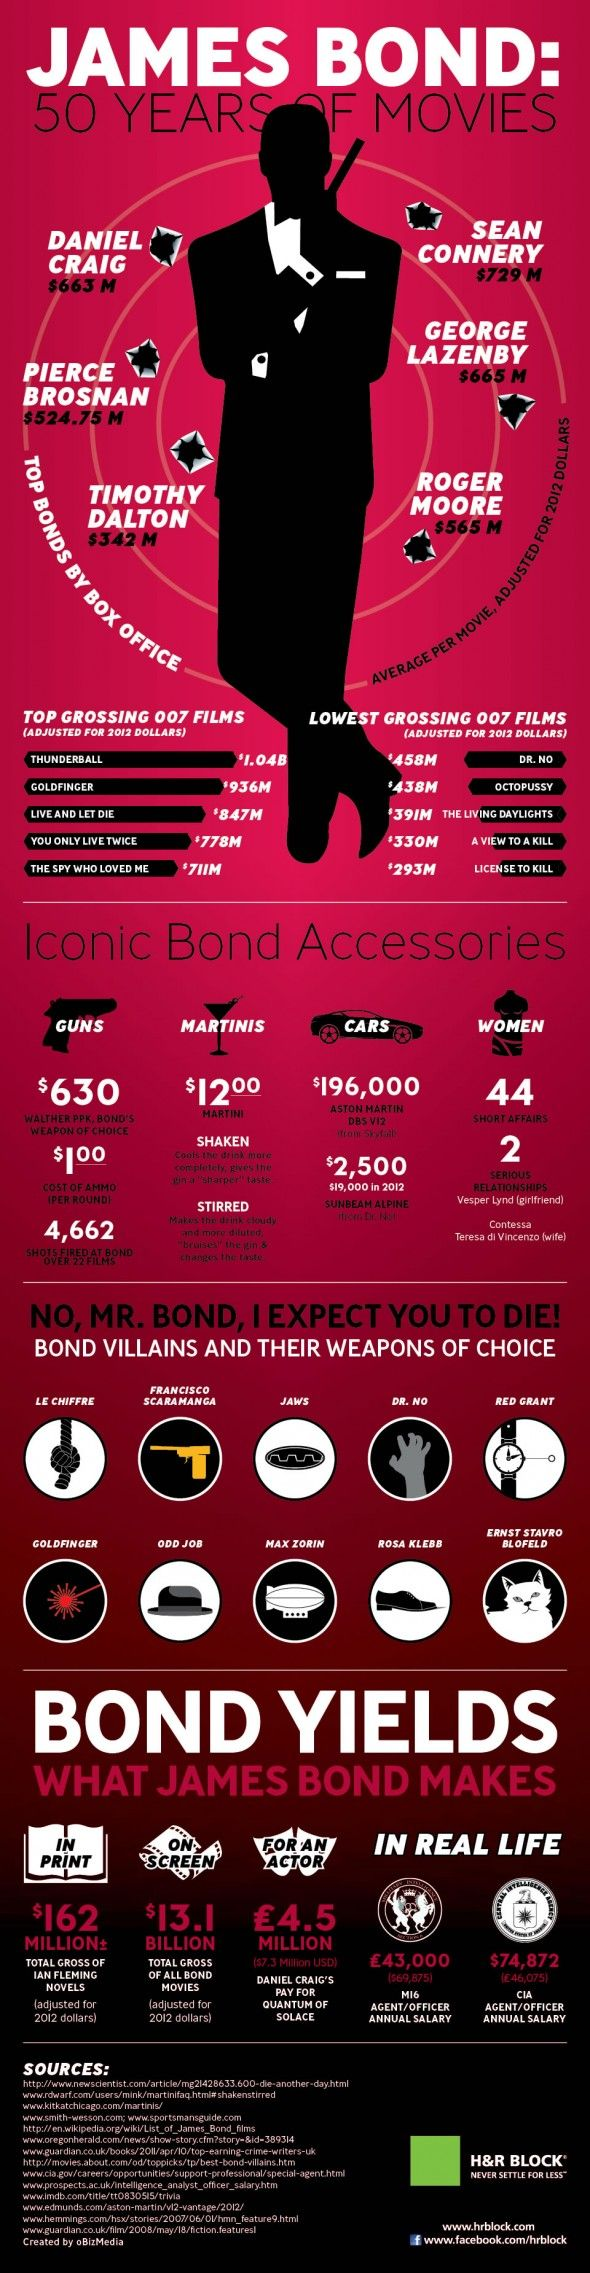 #INFOGRAPHIC: 50 YEARS OF JAMES BOND!